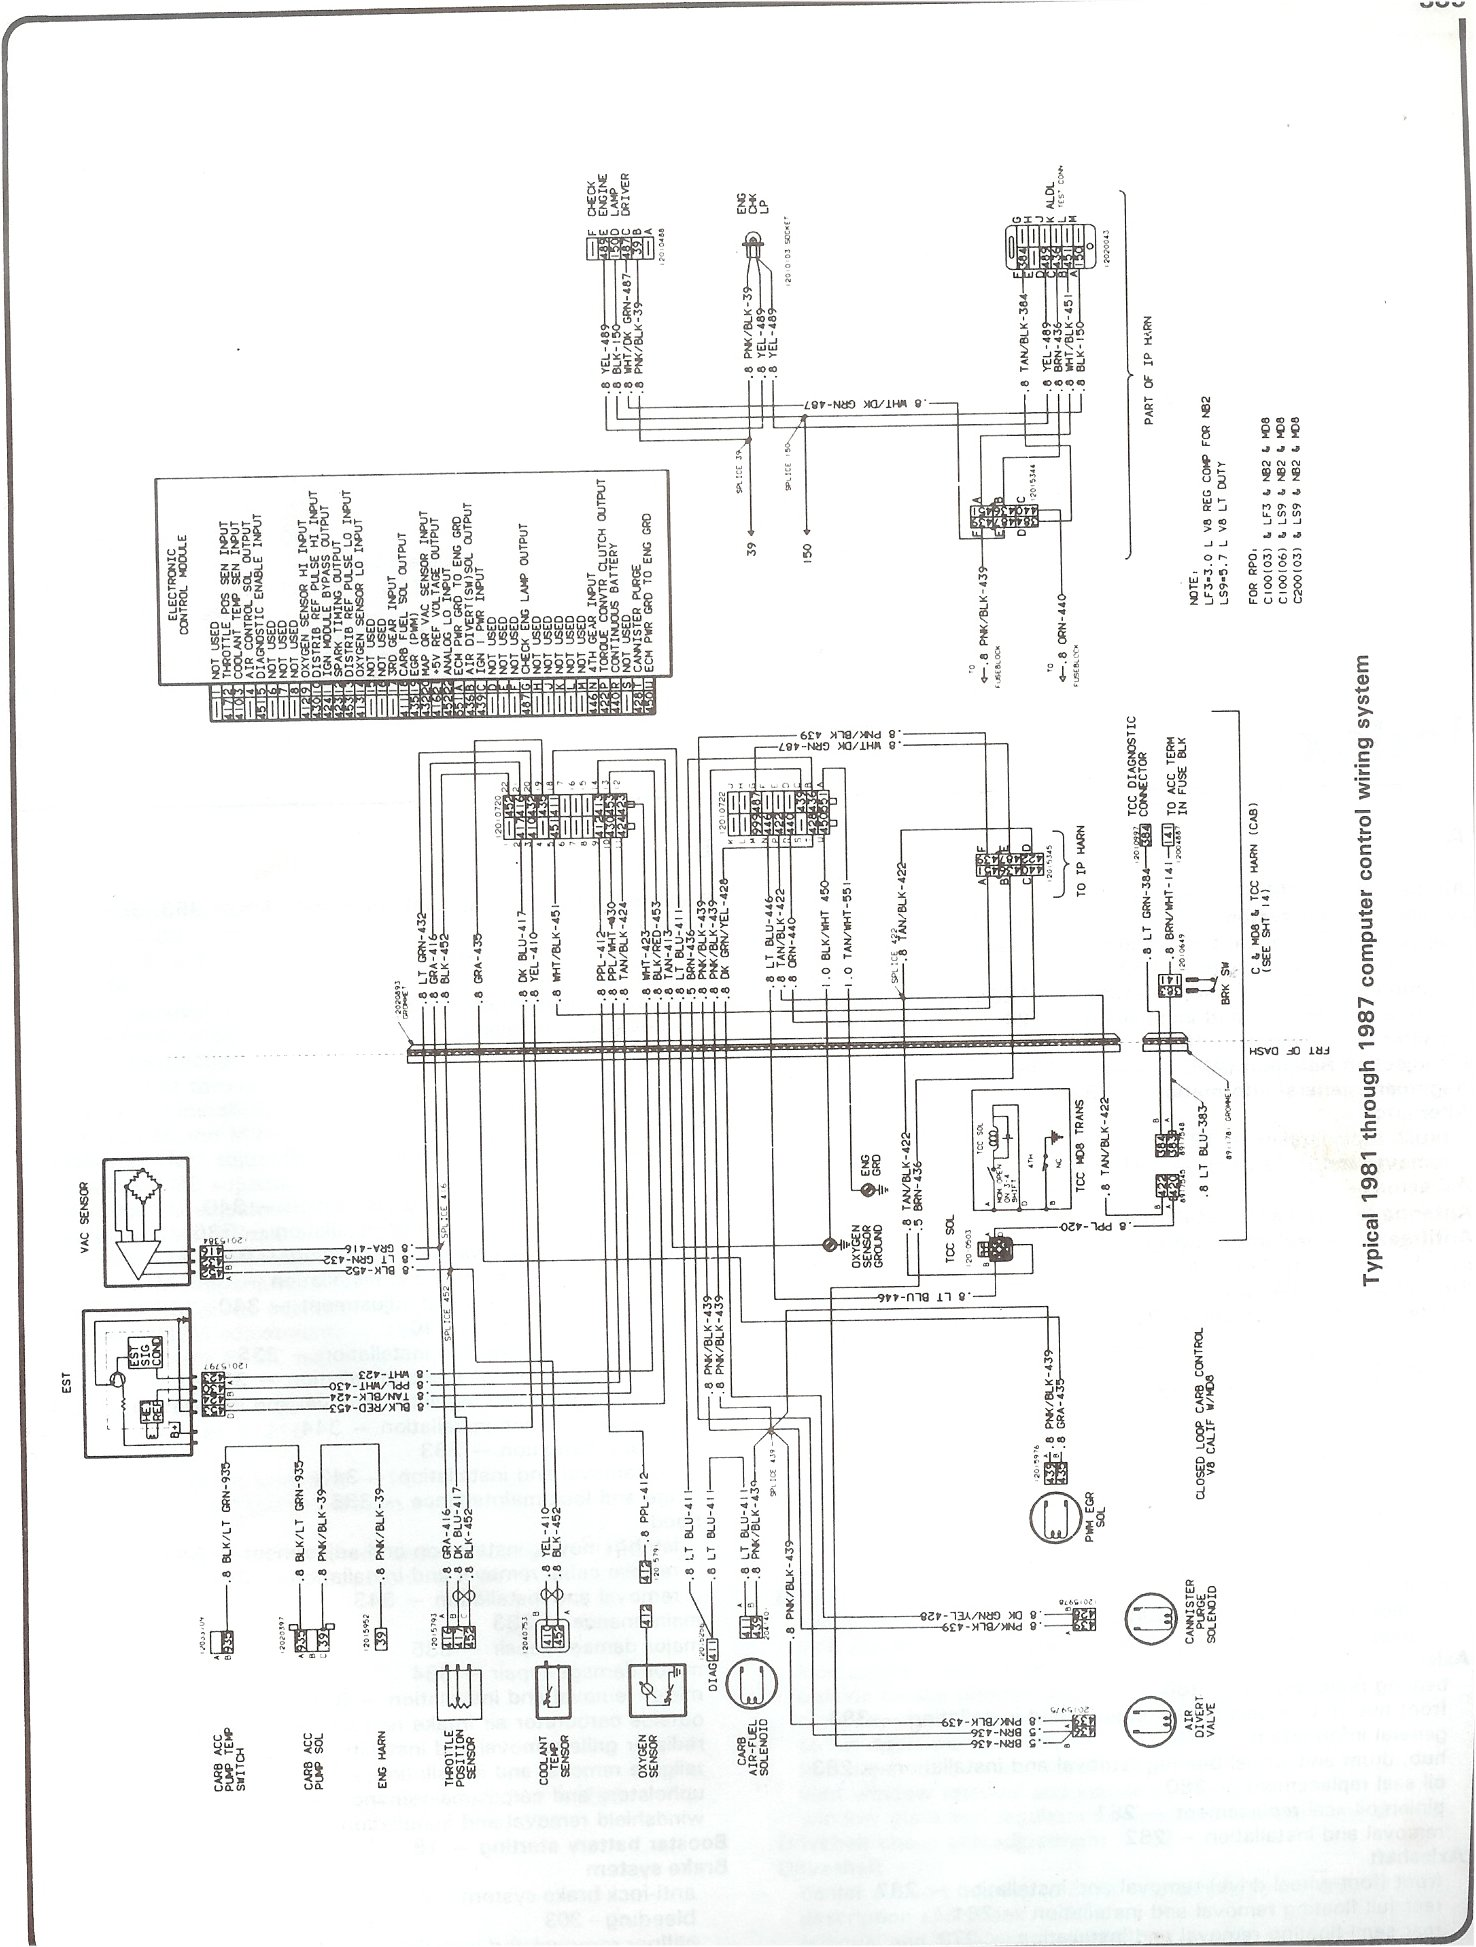 80 Chevy C10 Wiring Diagram - Designmethodsandprocesses.co.uk • on 1965 chevrolet truck wiring diagram, 1976 chevrolet truck wiring diagram, 1962 chevrolet truck wiring diagram, 1977 chevrolet truck brochure, 1971 chevrolet truck wiring diagram, 1977 chevrolet truck parts, 1956 chevrolet truck wiring diagram, 1977 chevrolet g30 camper van, 1954 chevrolet truck wiring diagram, 1948 chevrolet truck wiring diagram, 1959 chevrolet truck wiring diagram, 1929 chevrolet truck wiring diagram, 1969 chevrolet truck wiring diagram, 1968 chevrolet truck wiring diagram, 1979 chevrolet truck wiring diagram, 1974 chevrolet truck wiring diagram, 1996 chevrolet truck wiring diagram, 1957 chevrolet truck wiring diagram, 1998 chevrolet truck wiring diagram, 1972 chevrolet truck wiring diagram,